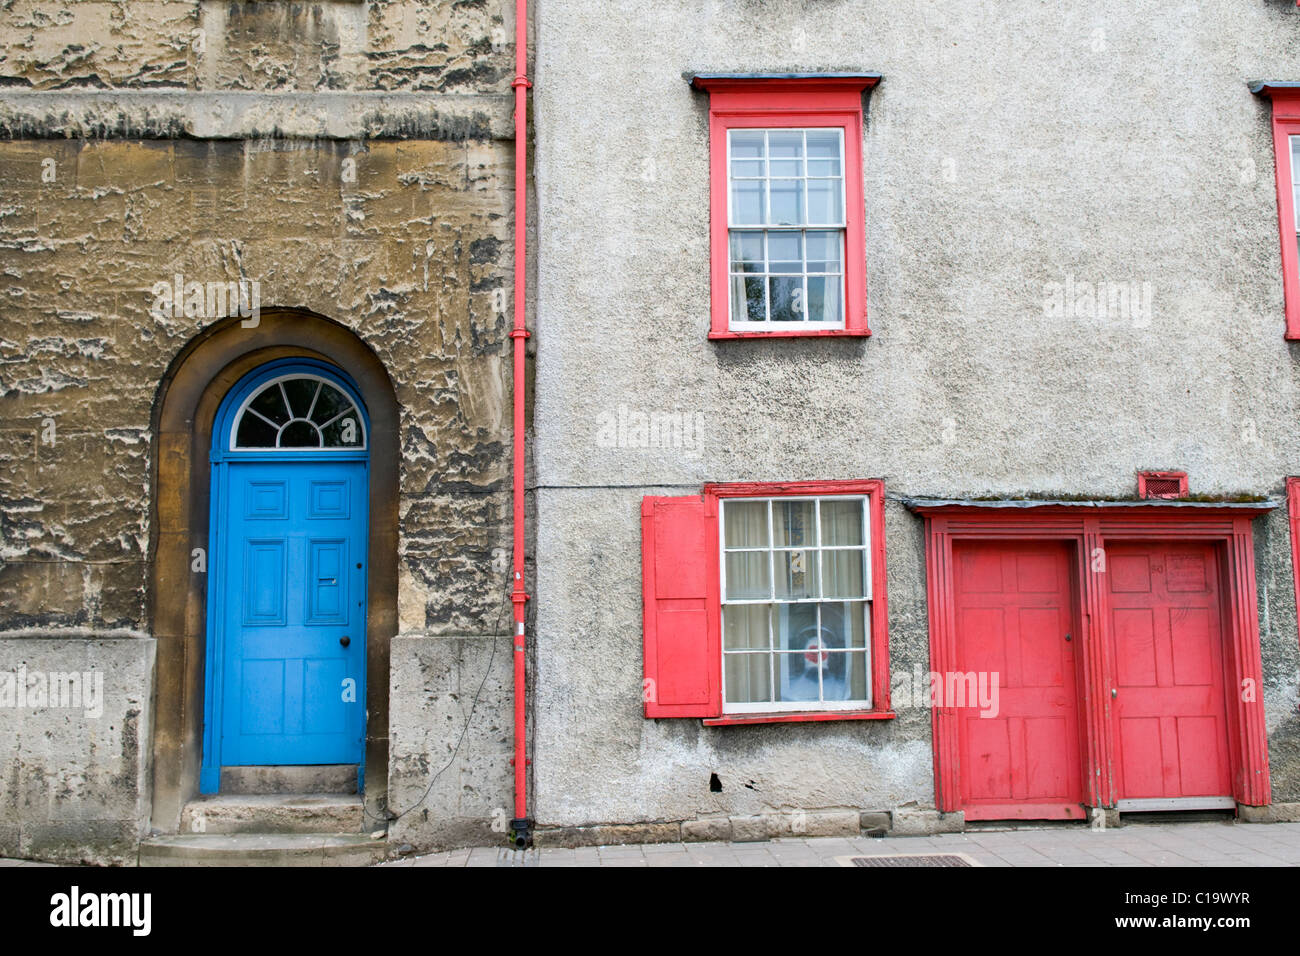 Red And Blue Painted Front Doors And Windows On Houses In Oxford